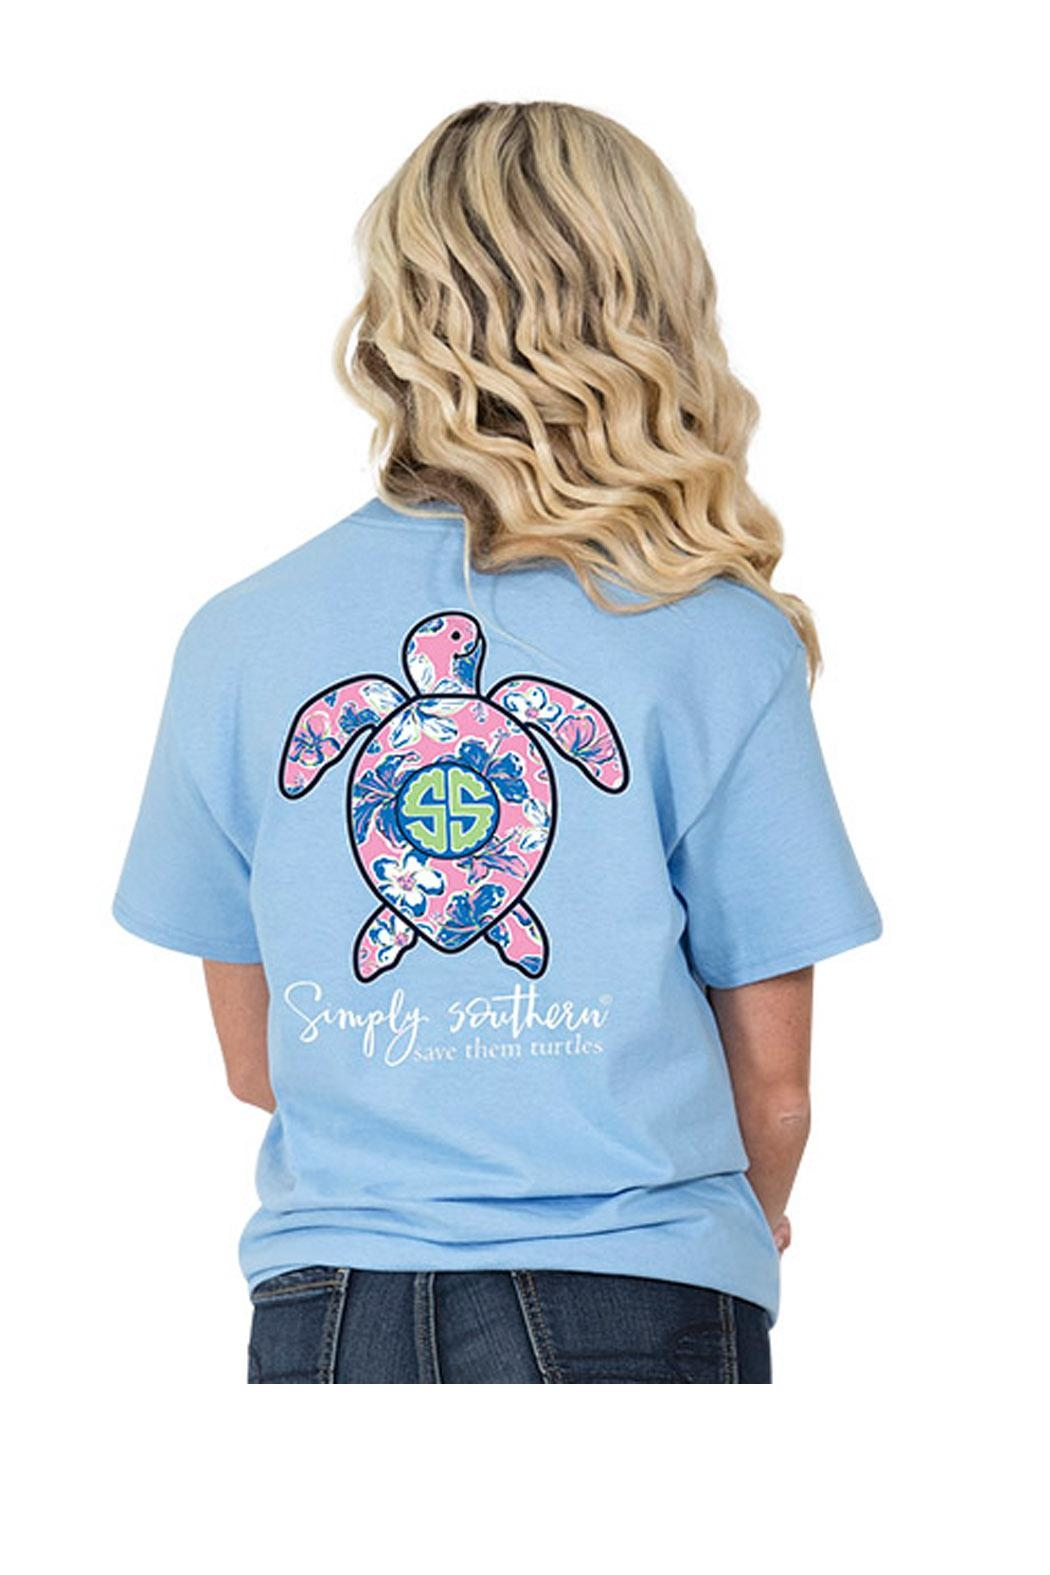 Simply Southern Save Turtles T-Shirt - Main Image